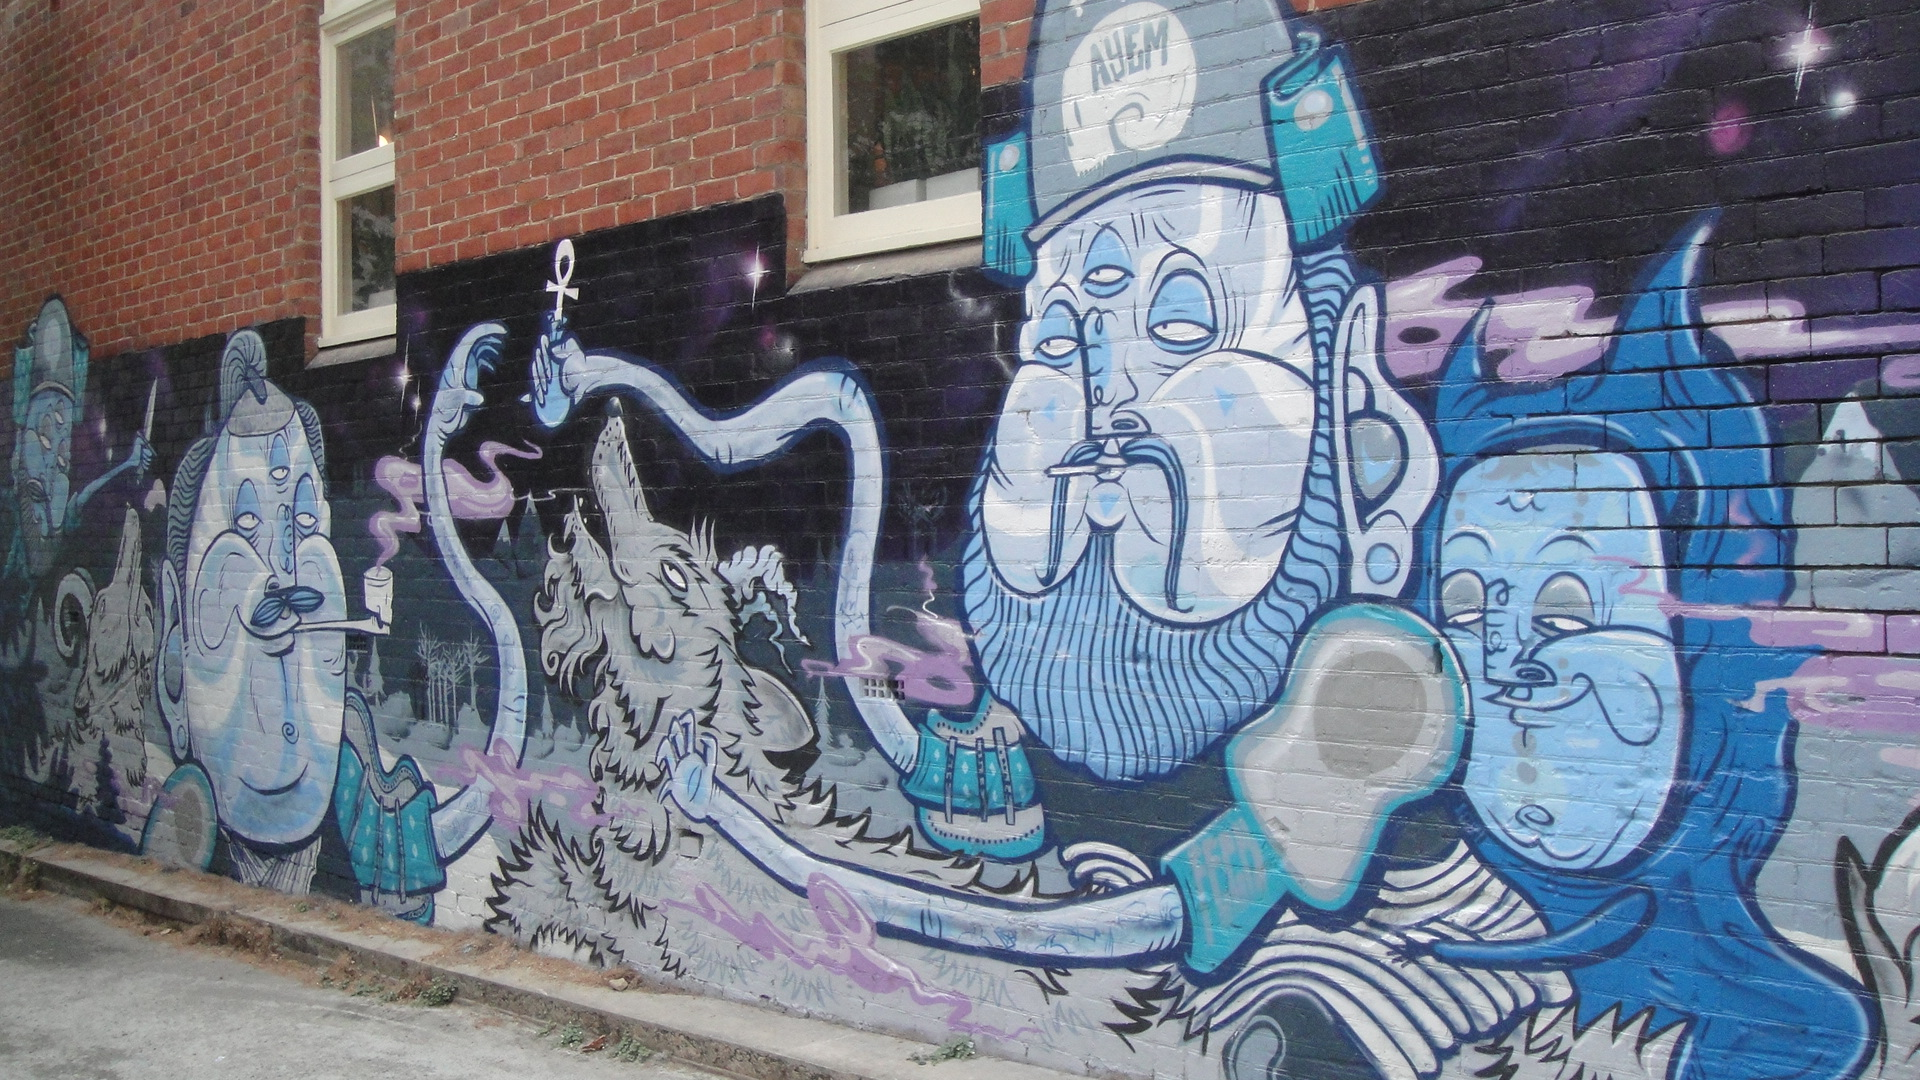 graffiti vandalism or art The debate over whether graffiti is art or vandalism is still going on in most countries, marking or painting property without the property owner's permission is considered defacement and.